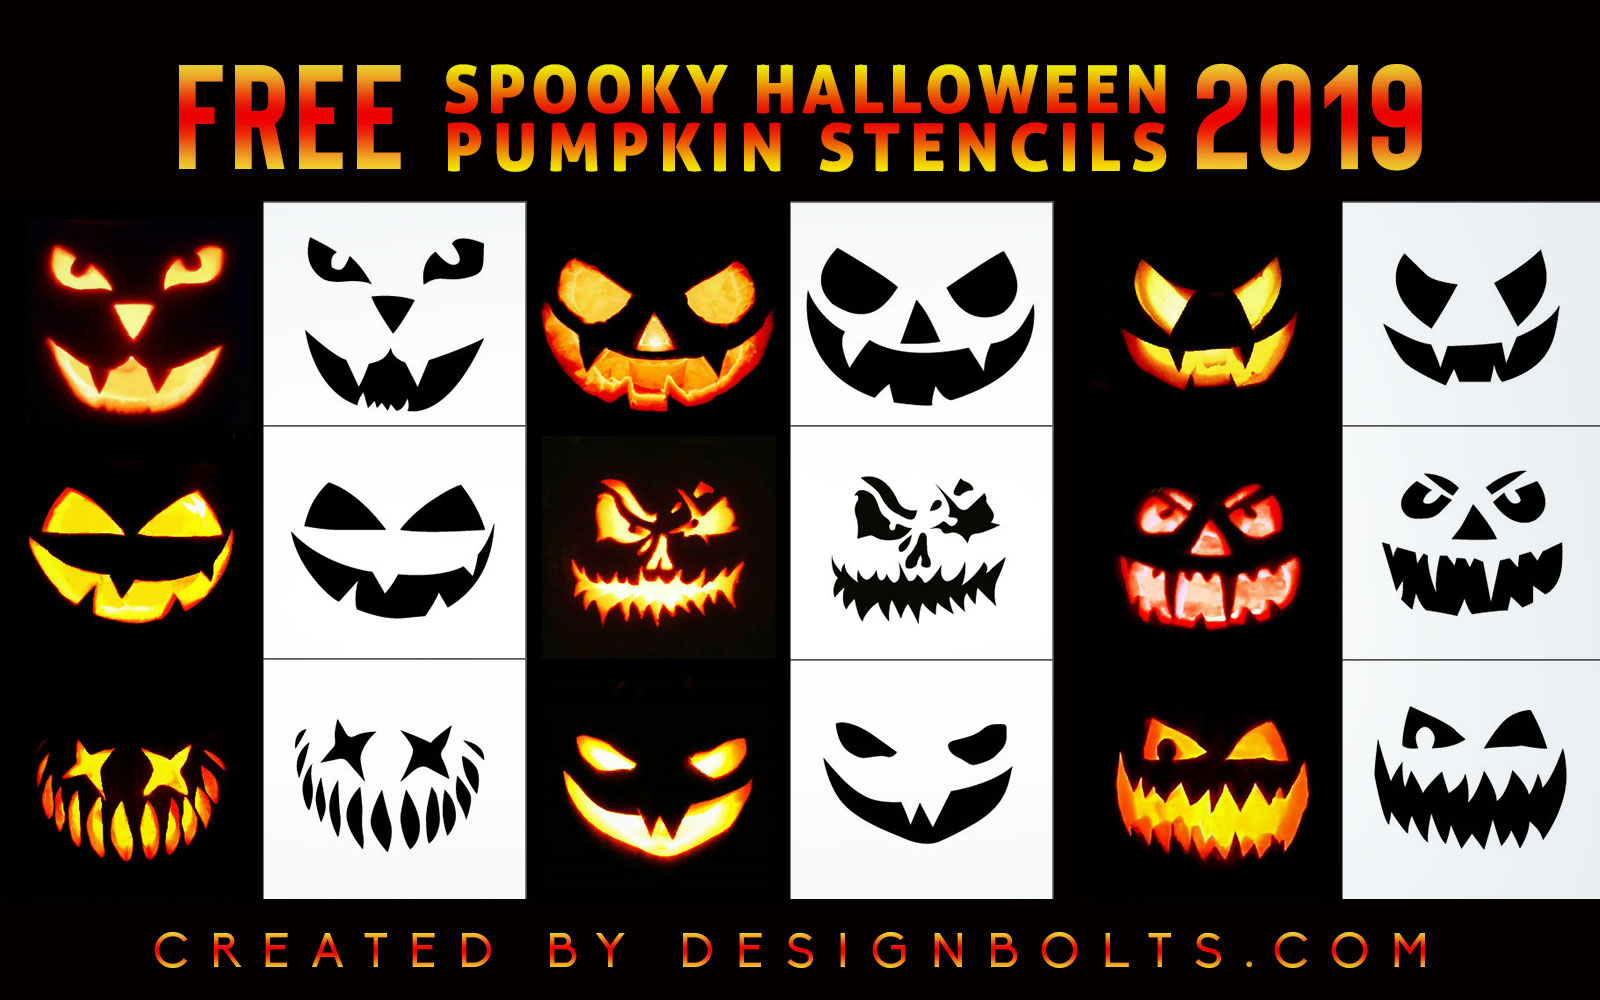 10 Free Spooky Yet Scary Halloween Pumpkin Carving Stencils Patterns Ideas 2019 Designbolts